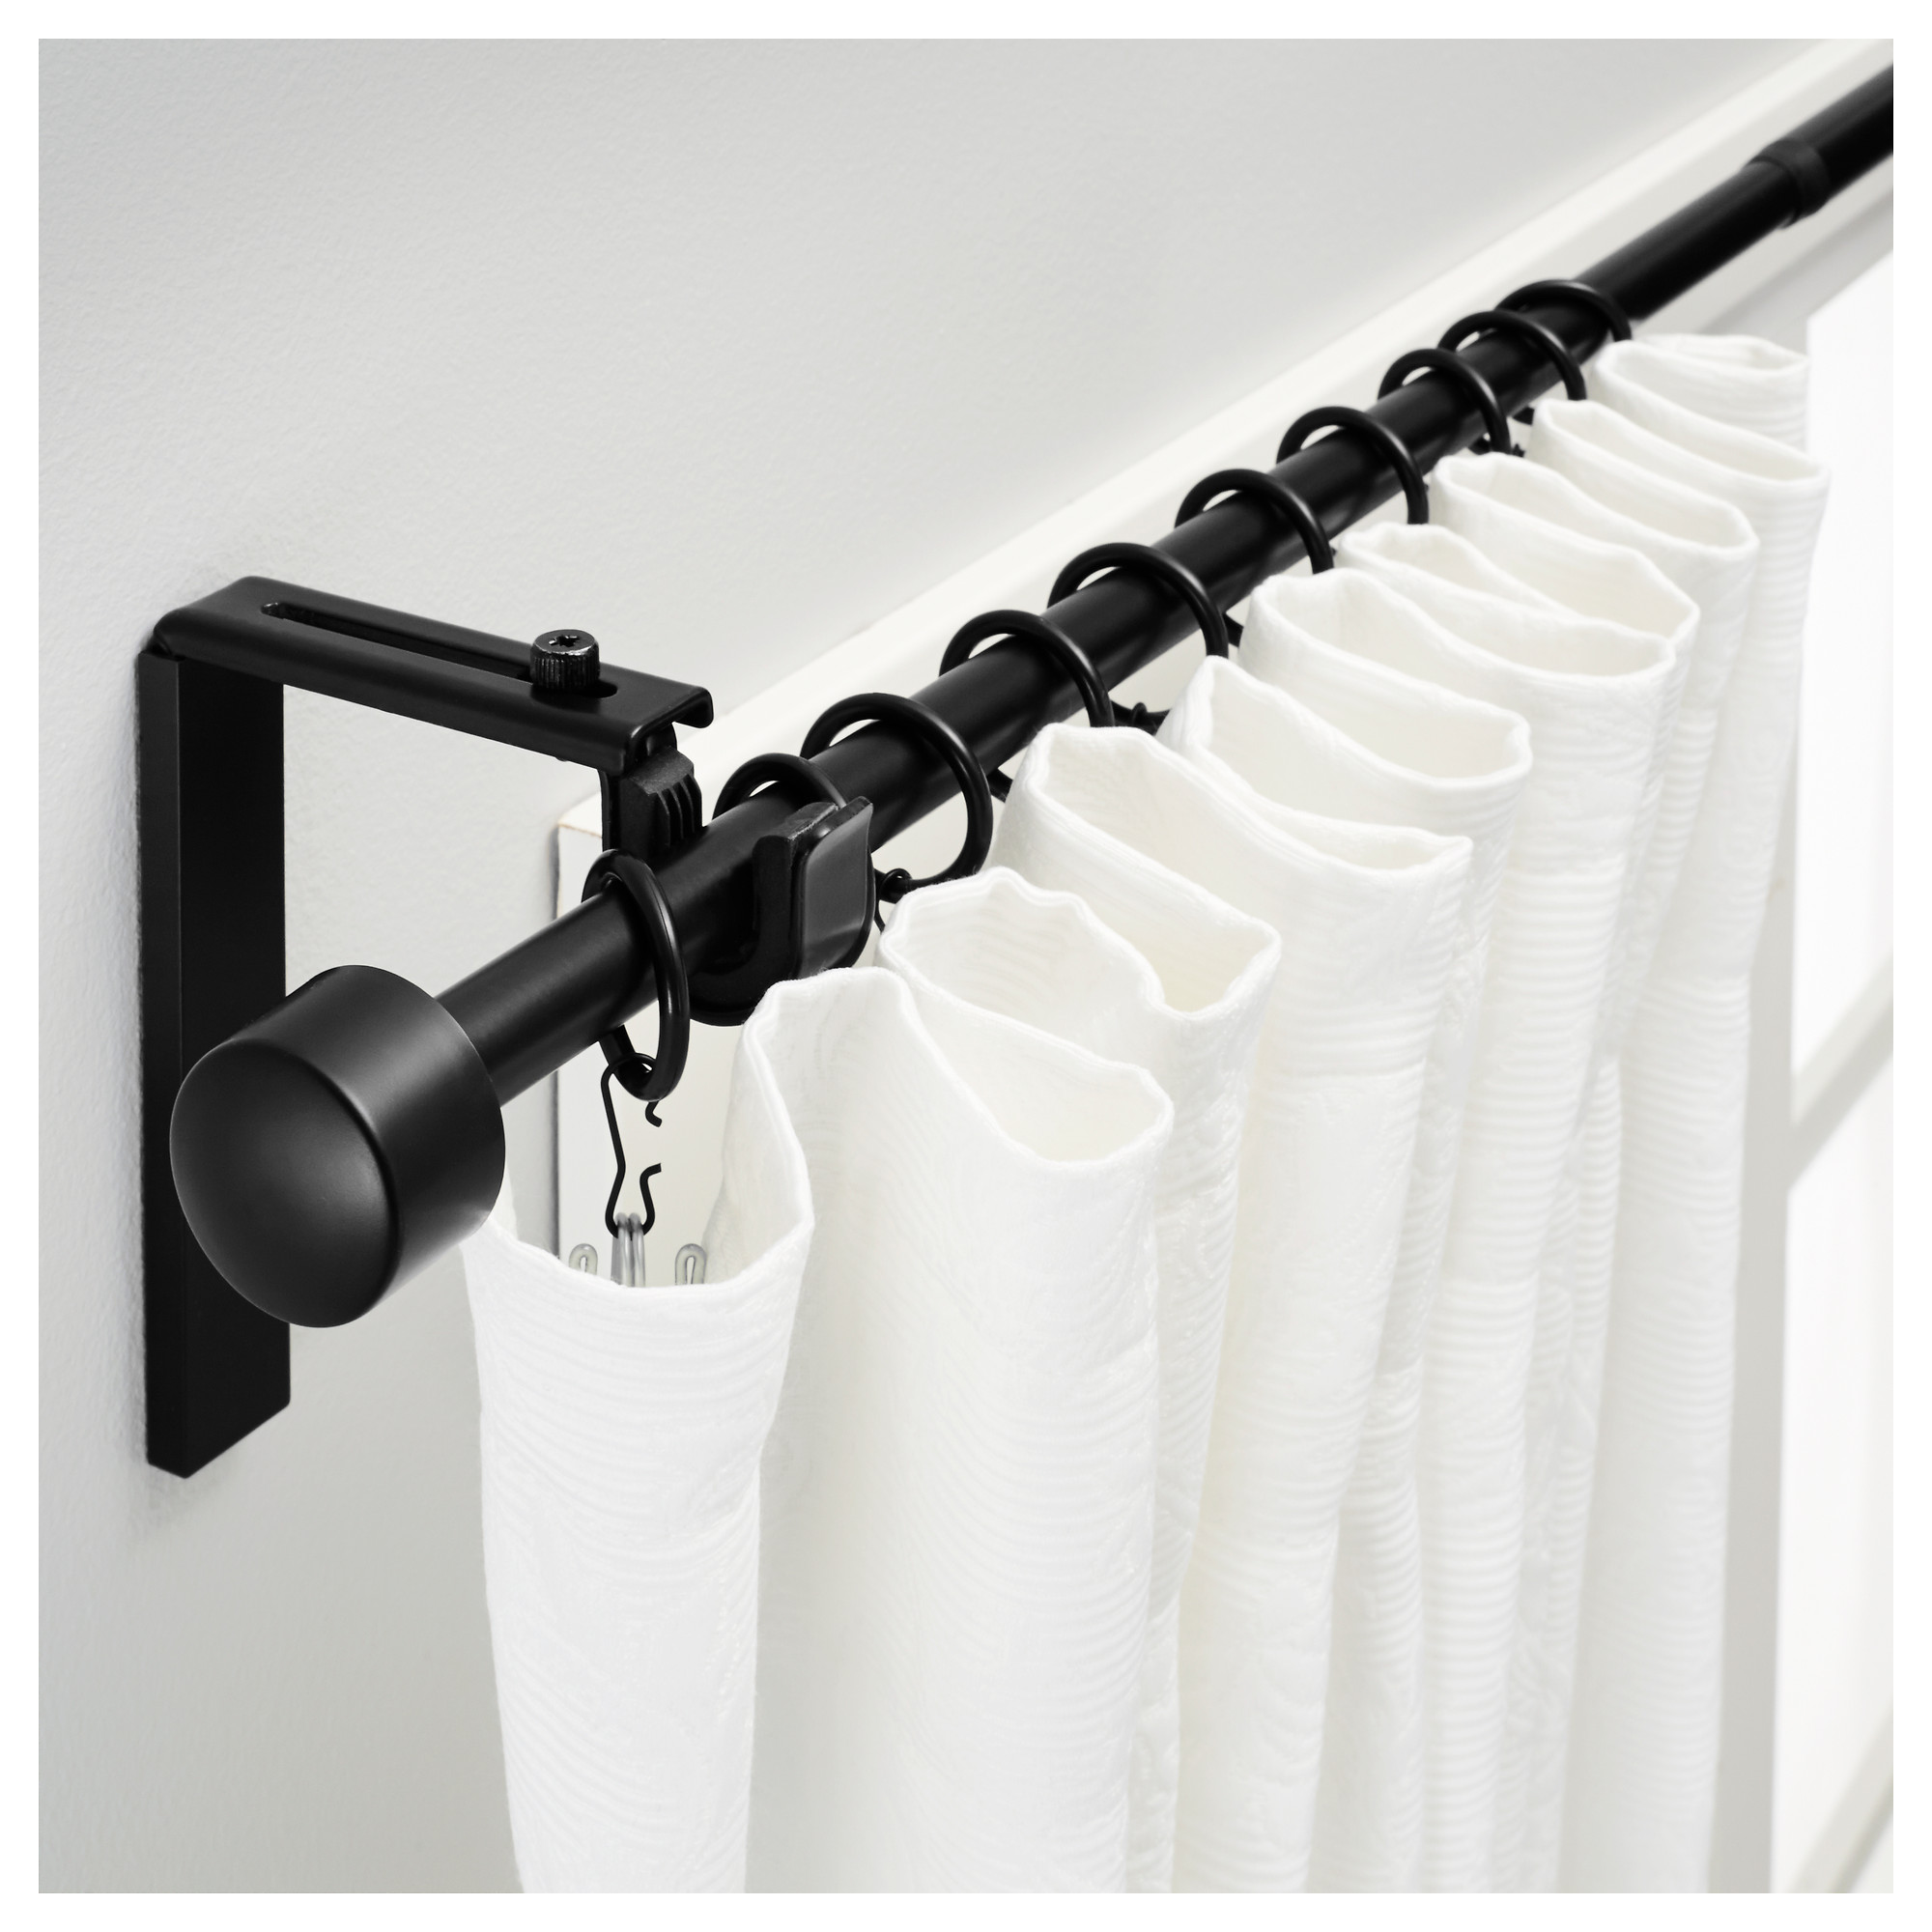 White double curtain rods - Amazing Black Rod Design With Curved Black Metal Tension Curtain Rod From Ikea With White Curtain